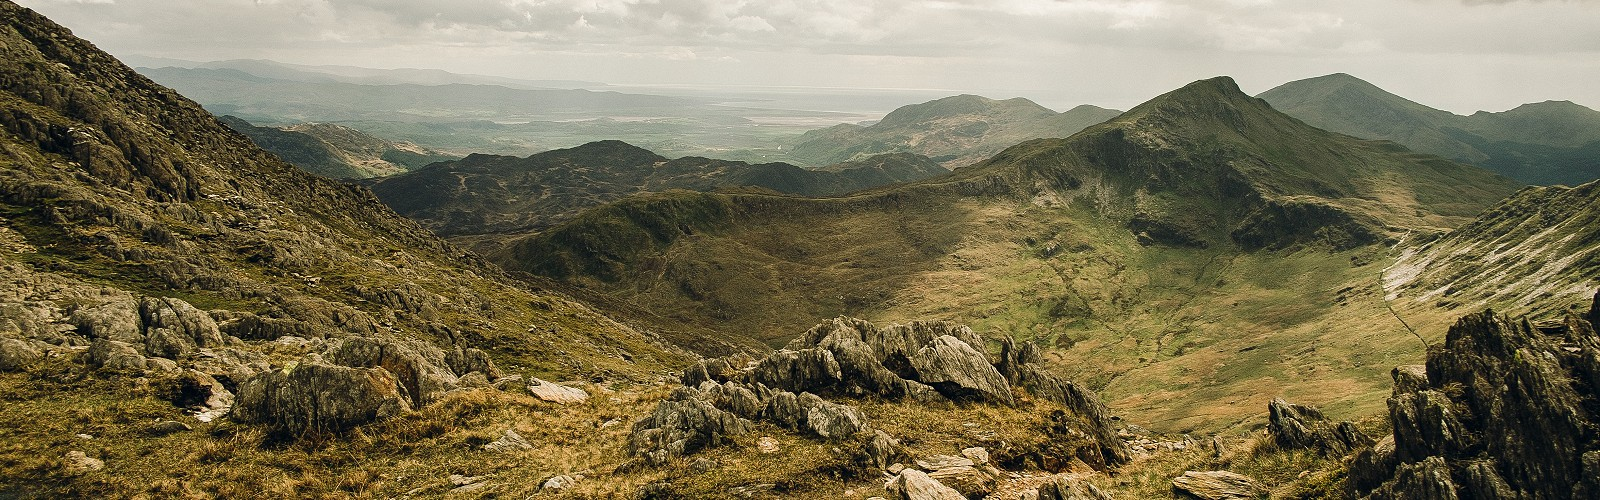 Valleys in Snowdonia (image: Mitchell Orr on unsplash)